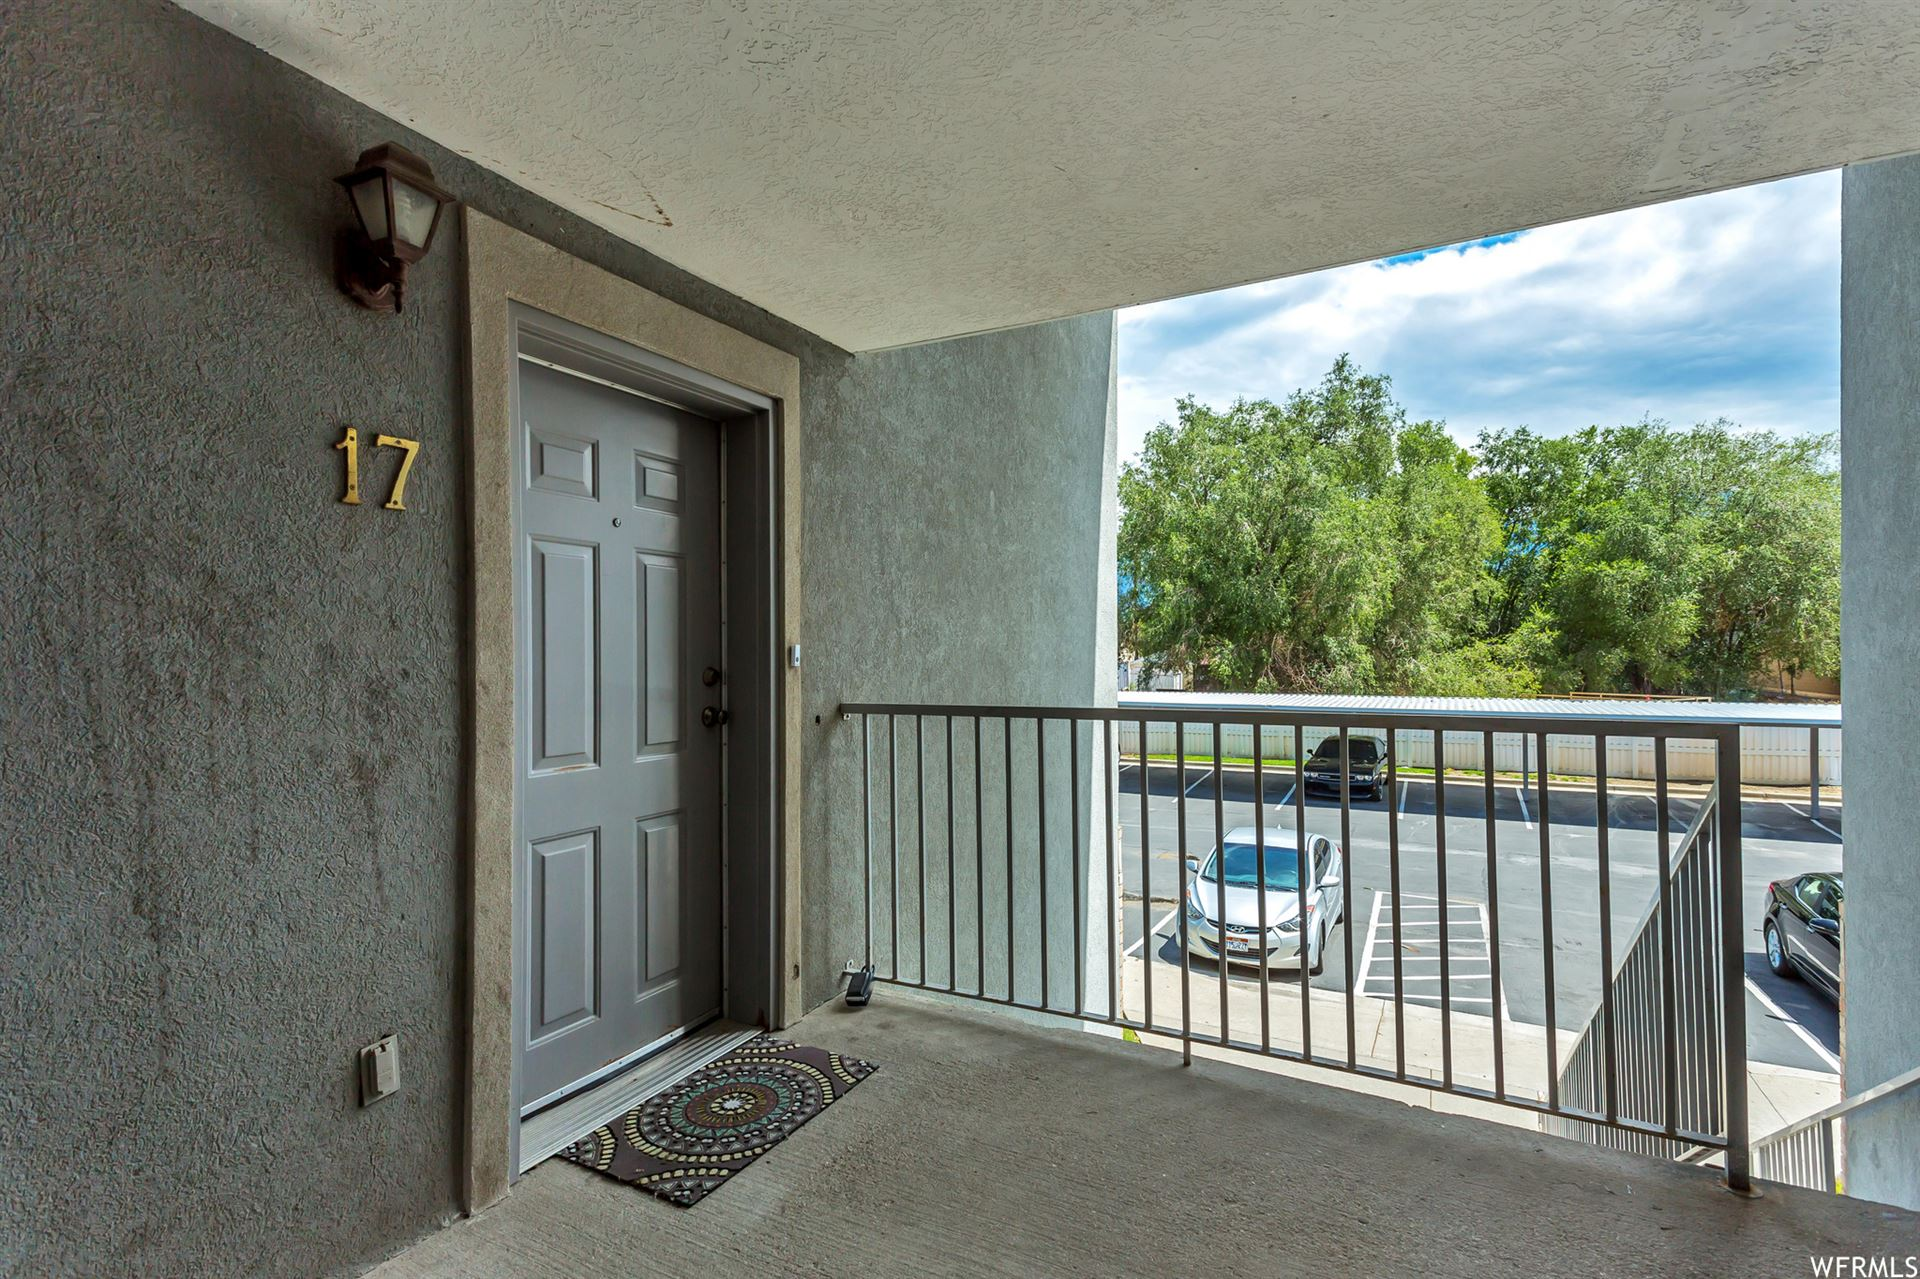 Photo of 30 W 7500 S #17, Midvale, UT 84047 (MLS # 1734059)